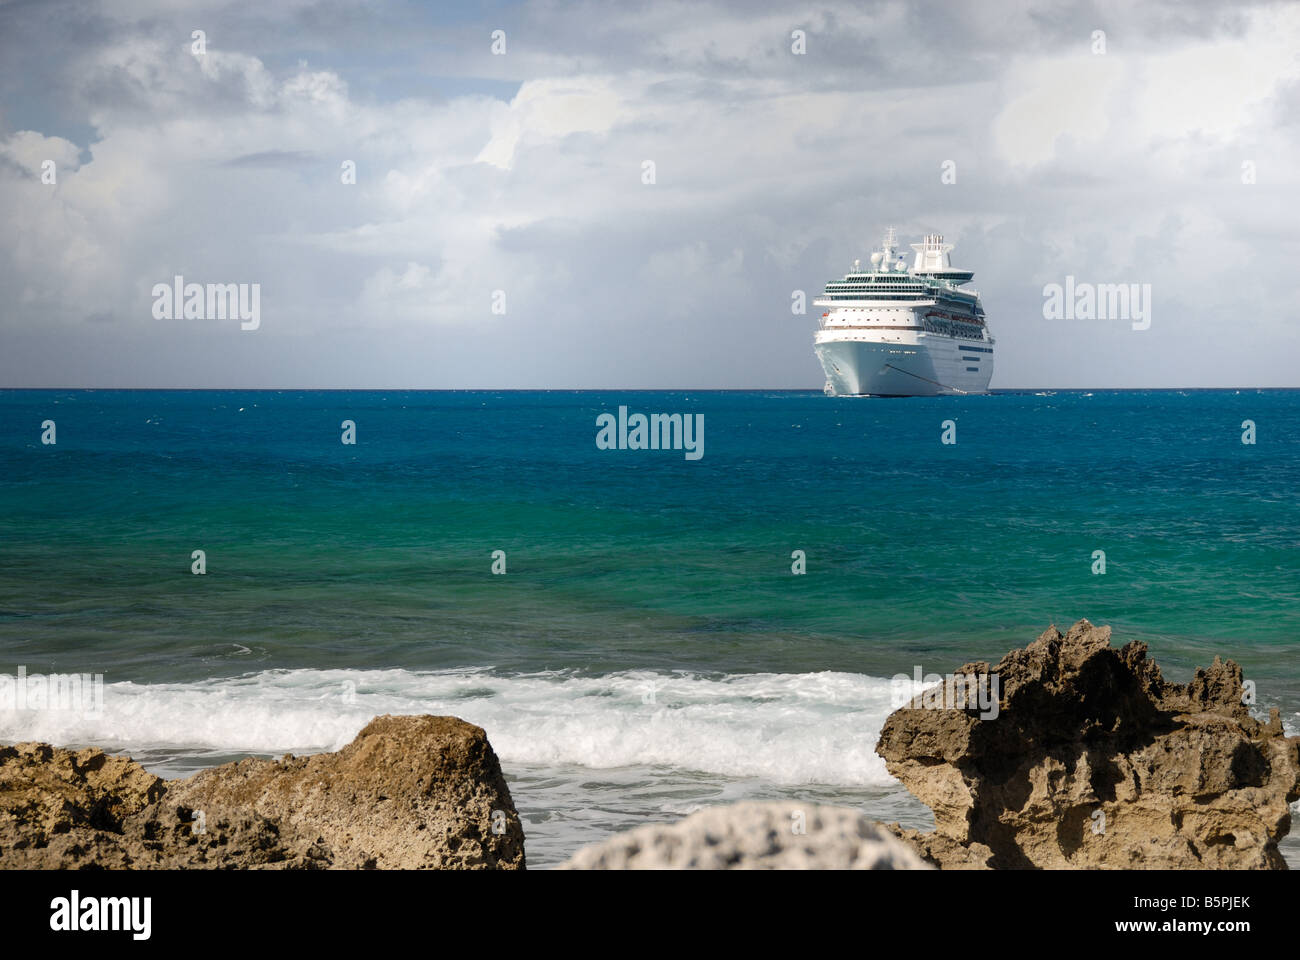 The Royal Caribbean ship Majesty of the Seas is tendered at Little Stirrup Cay, Bahamas. - Stock Image